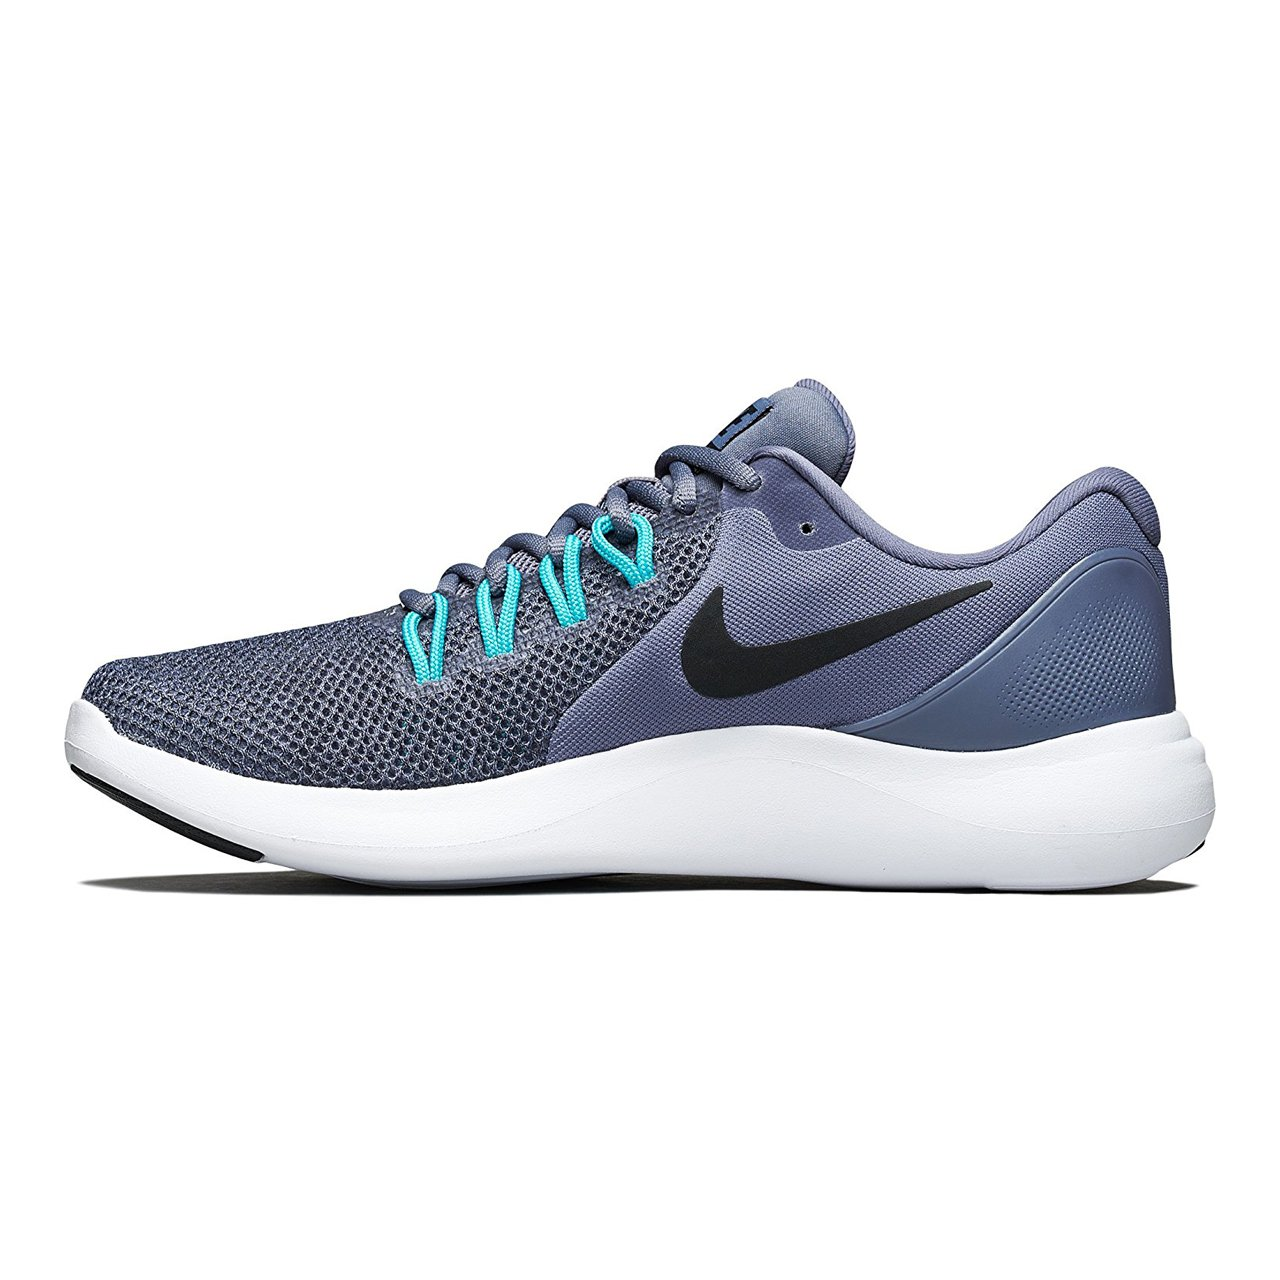 NIKE Lunar D(M) Apparent Mens Running Shoes B01MRF16BX 12 D(M) Lunar US|Light Carbon/Black-clear Jade 4fb312